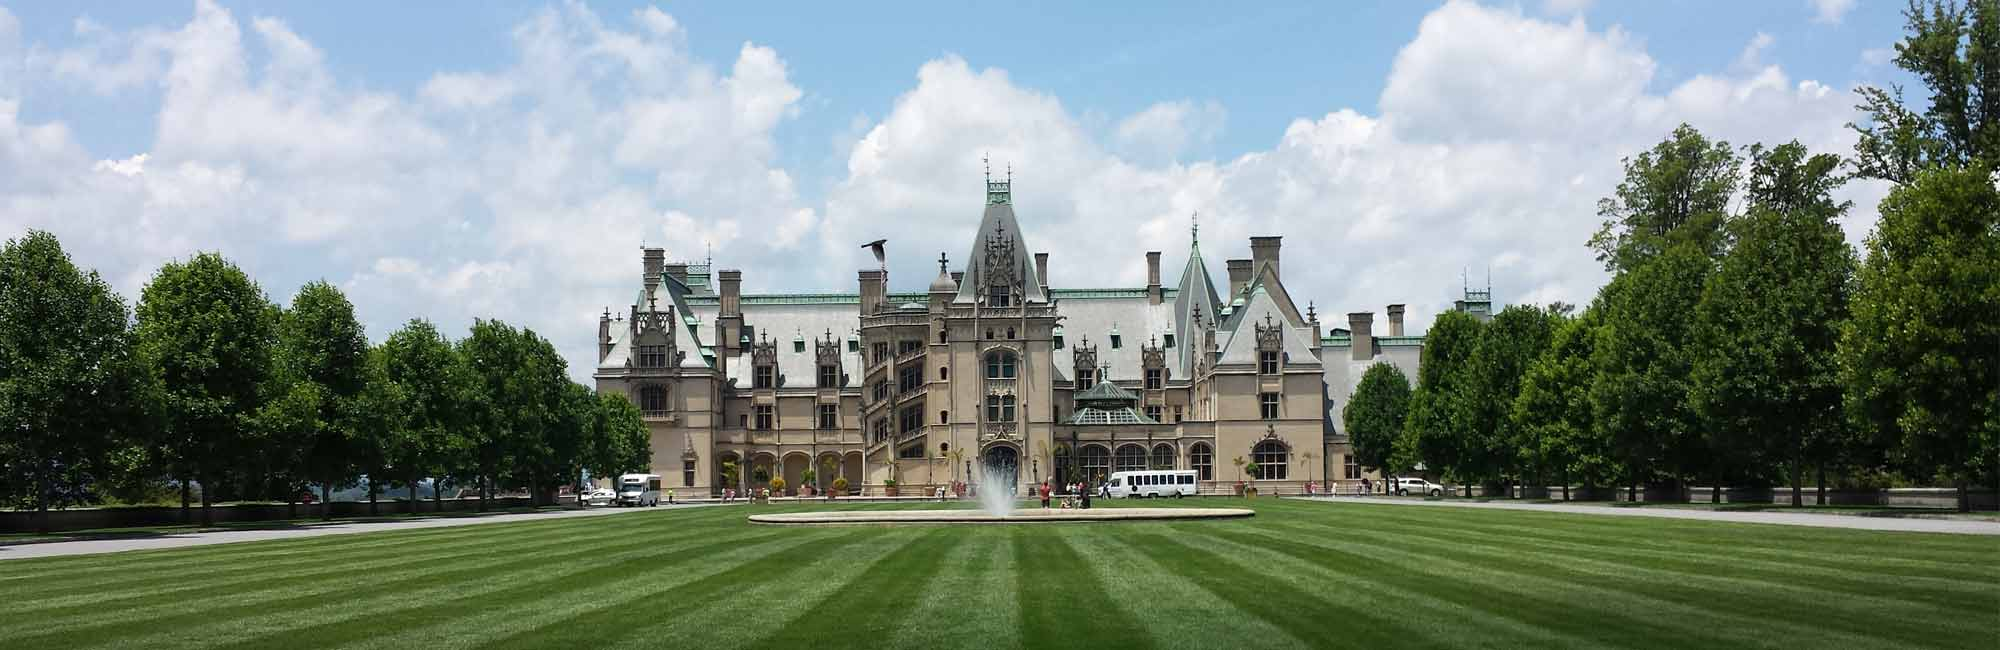 Biltmore_Estate_Asheville_NC_2015